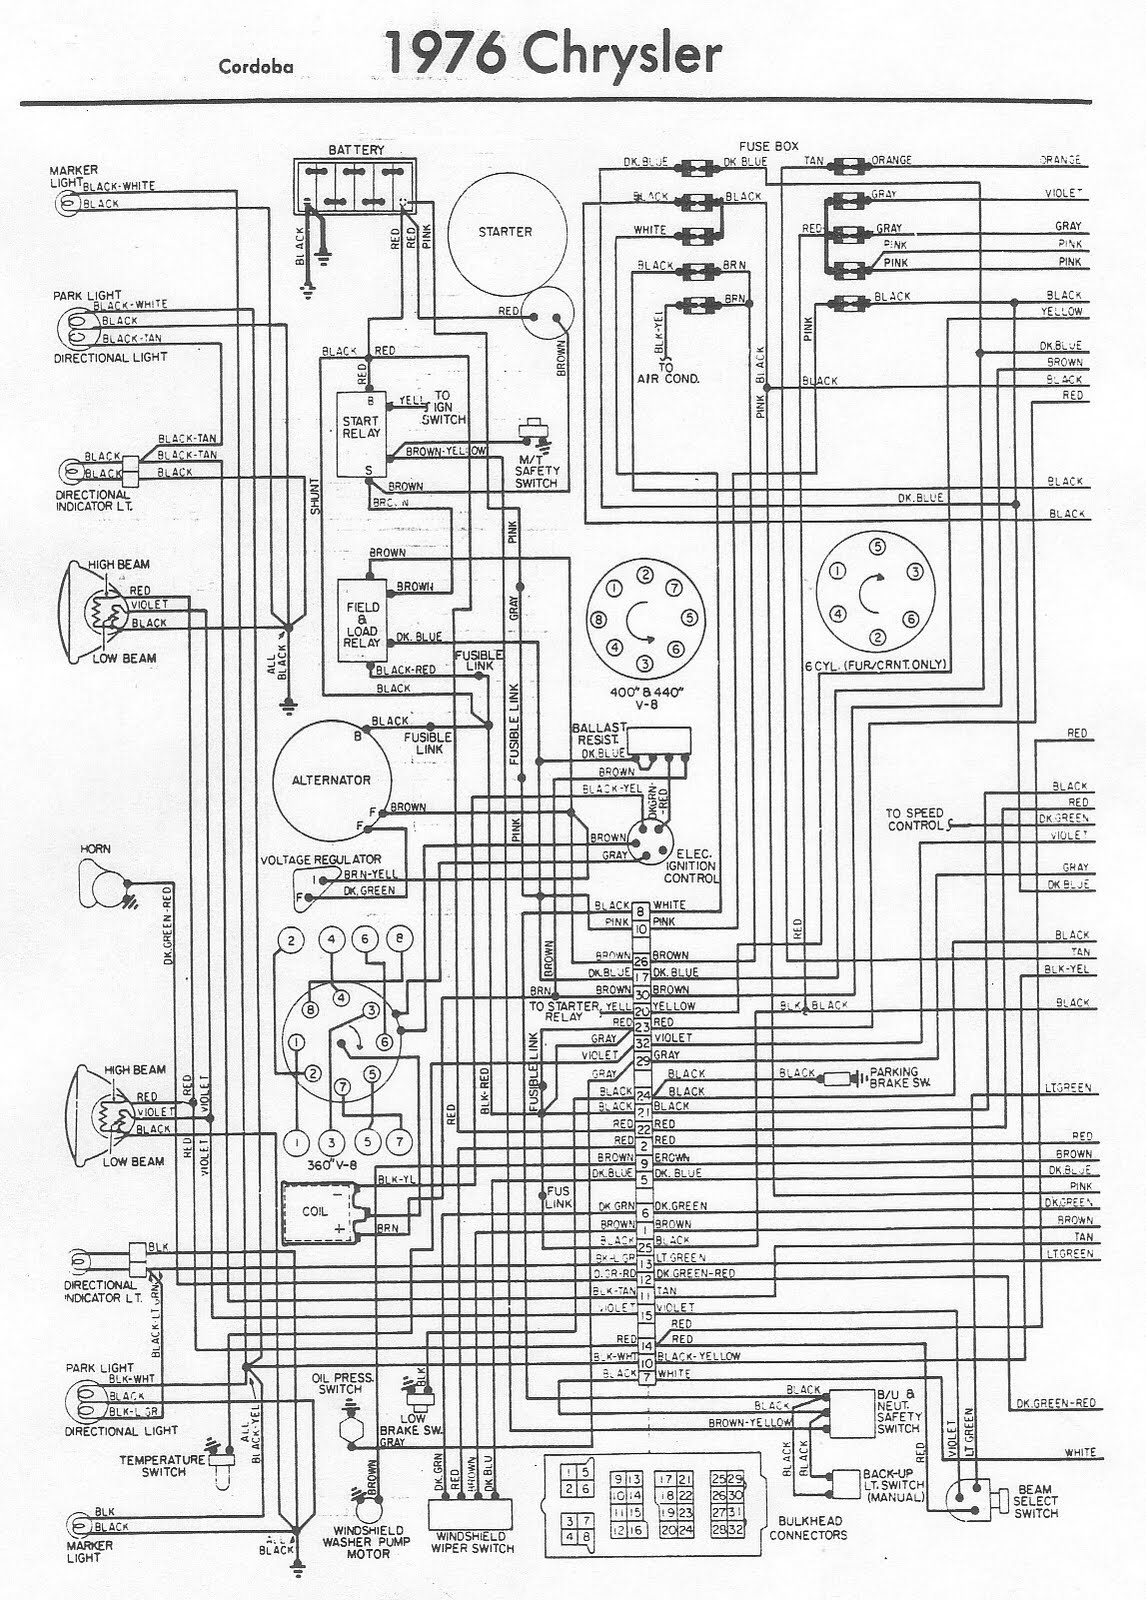 free wiring diagrams for cars allen bradley 2100 mcc auto diagram